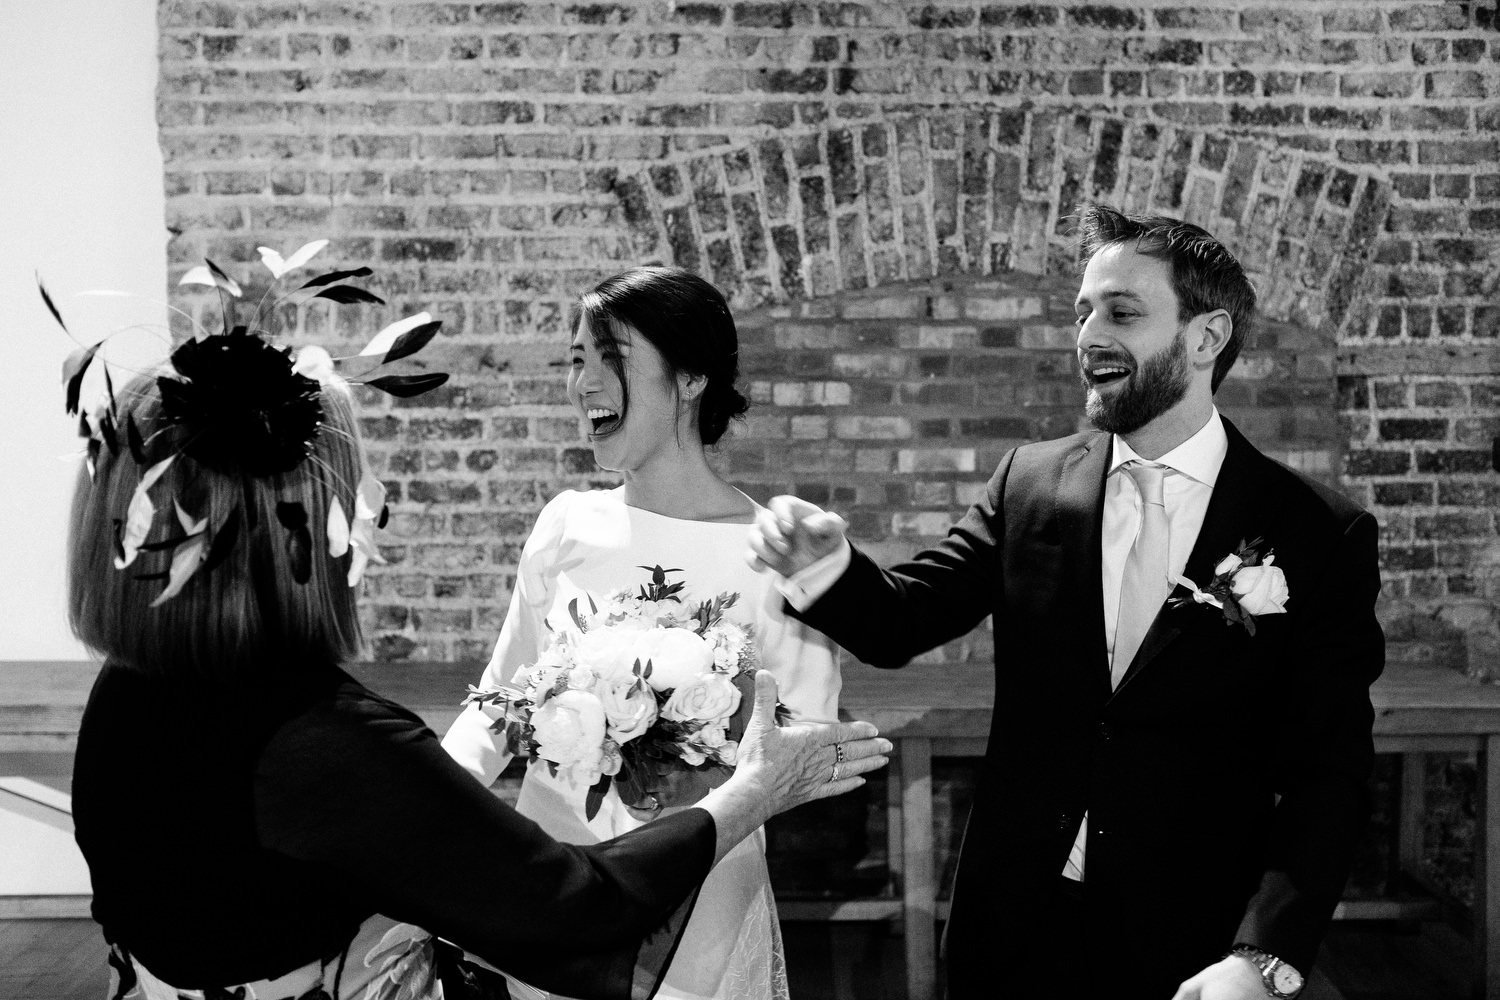 dmp0322_dublin_alley_photography_david_mcclelland_ceremony_humanist_documentary_theatre_smock_wedding_photographer